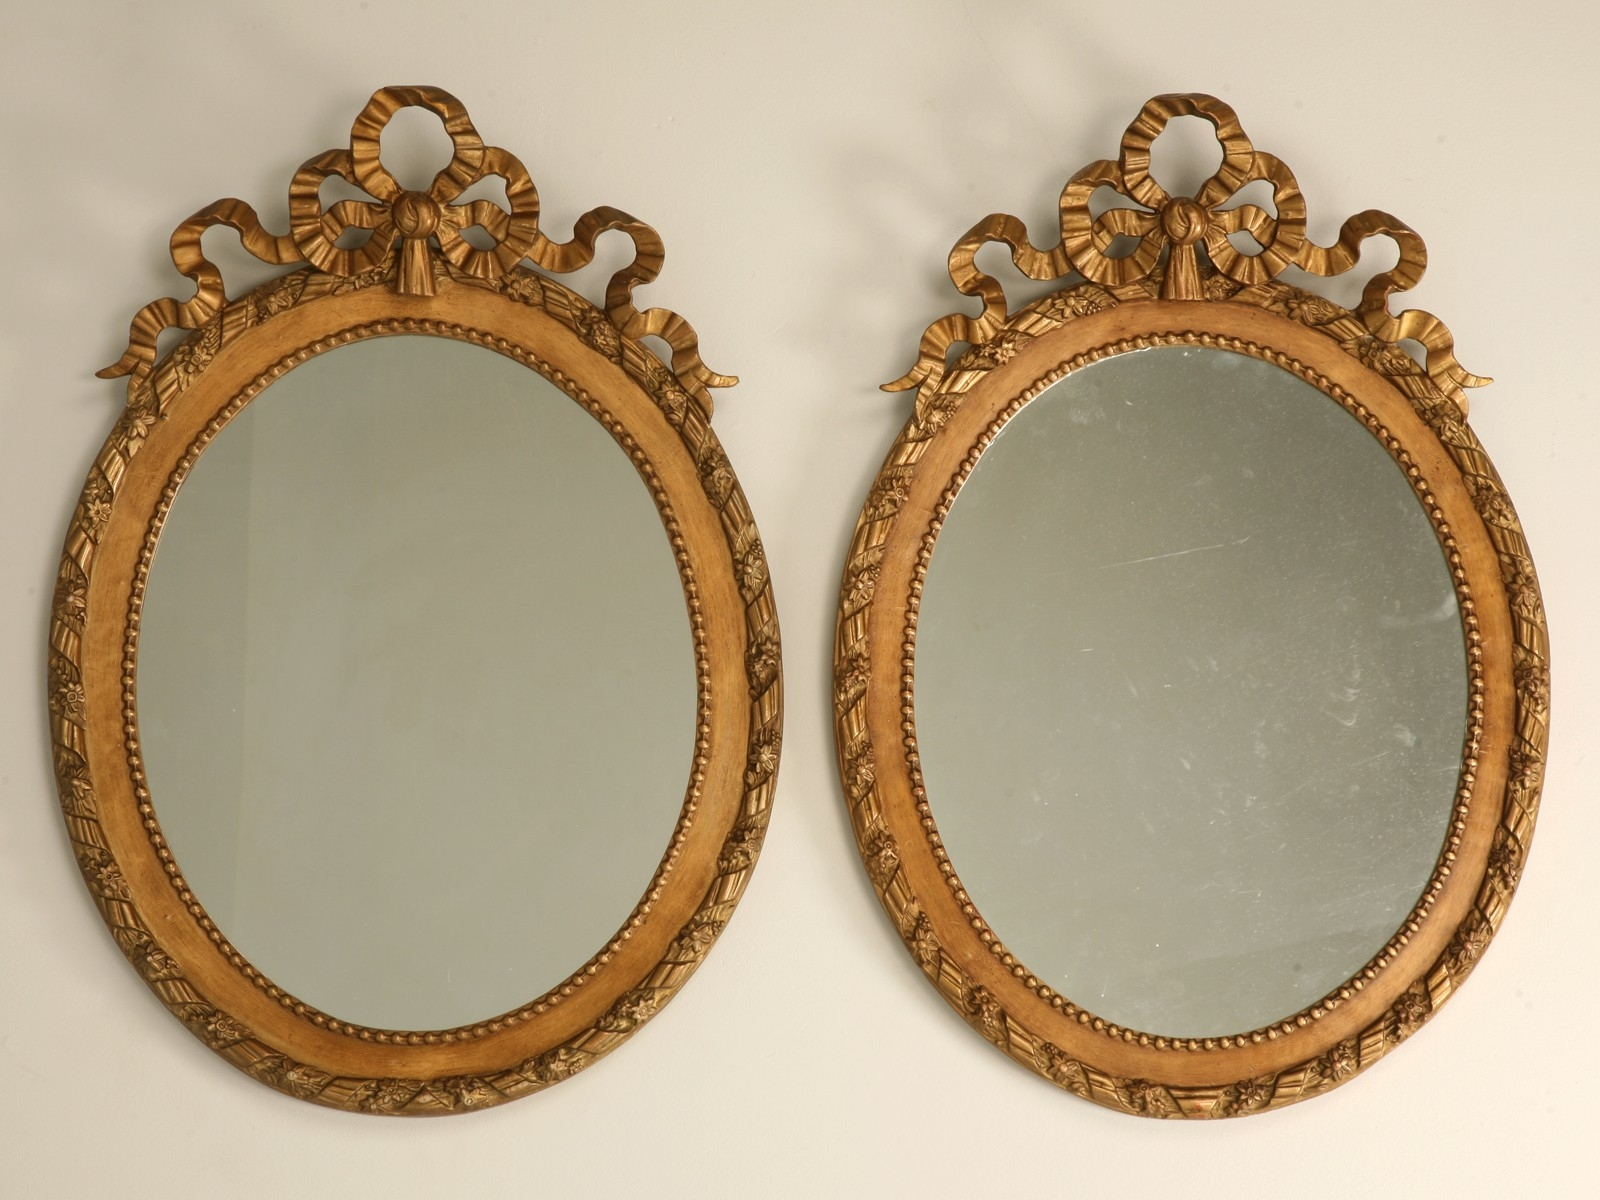 Pair Antique French Carved Gilded Mirrors For Sale Old Plank Within French Mirrors Reproduction (Image 15 of 15)